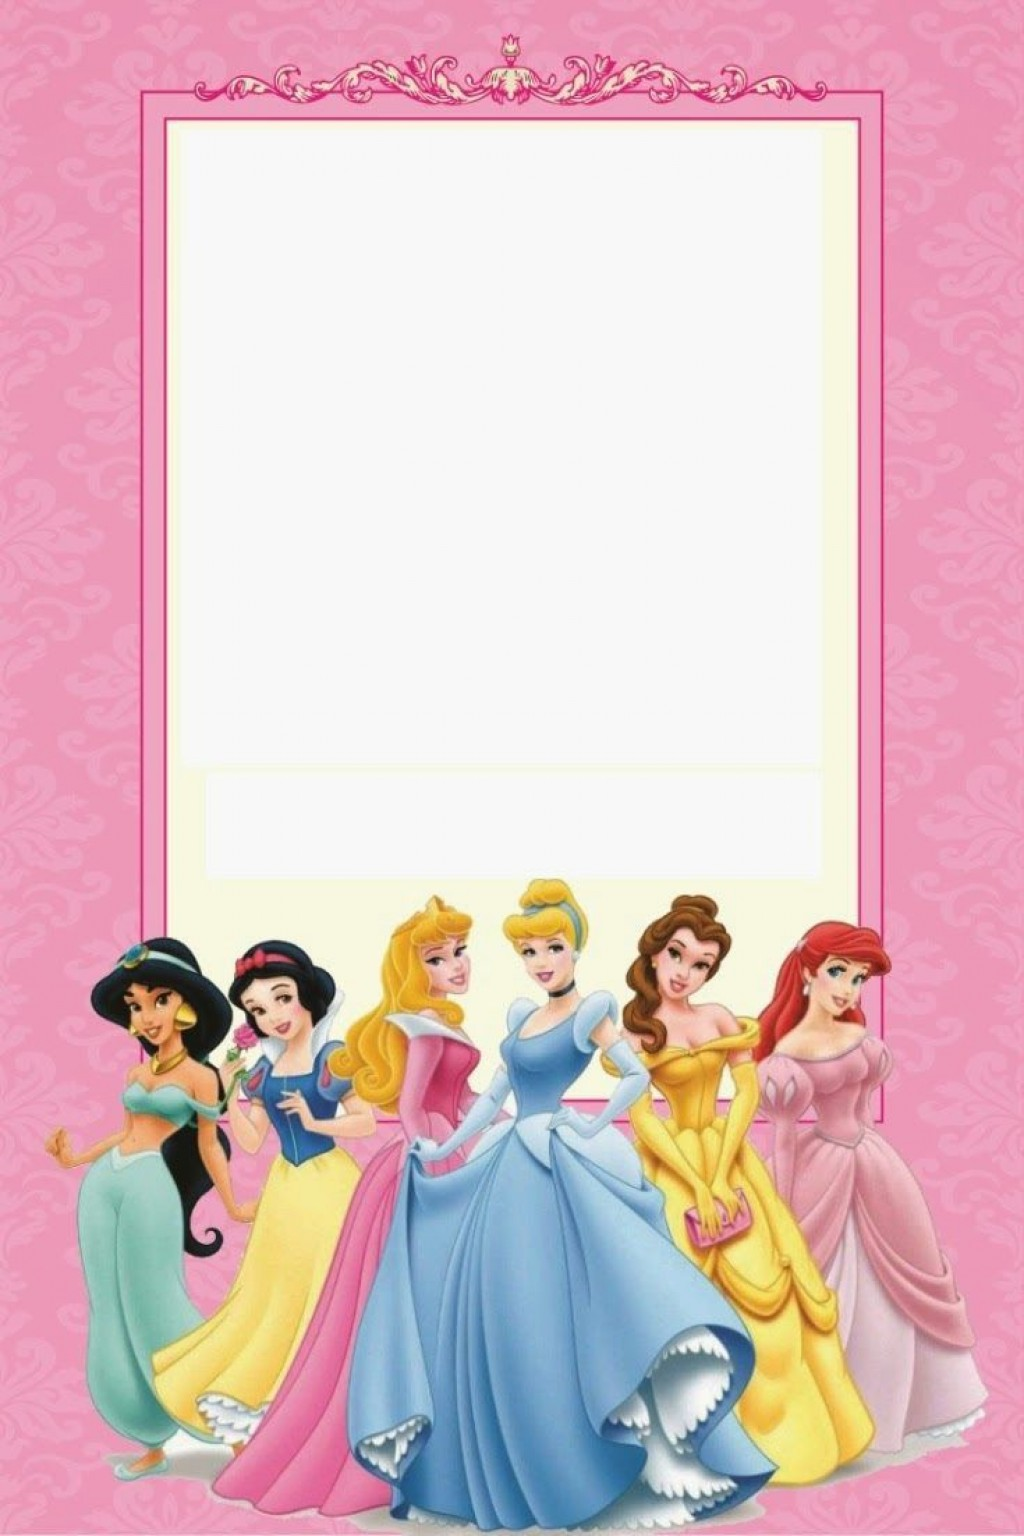 009 Marvelou Disney Princes Invitation Template Example  Downloadable Party Free Printable BirthdayLarge